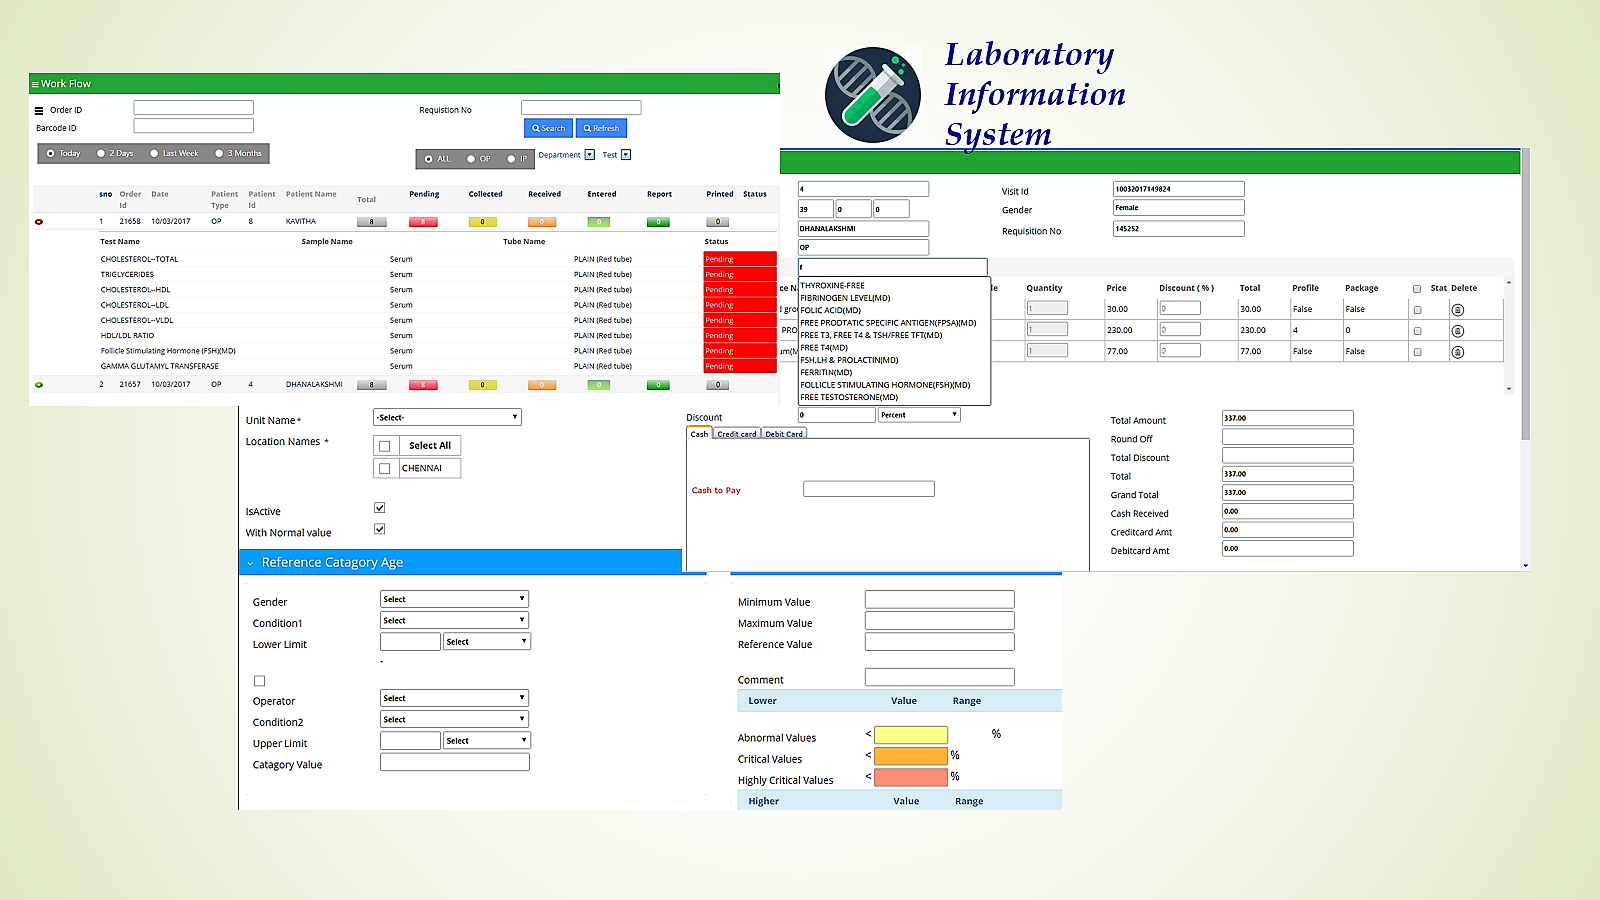 Screens of Laboratory Information Management System